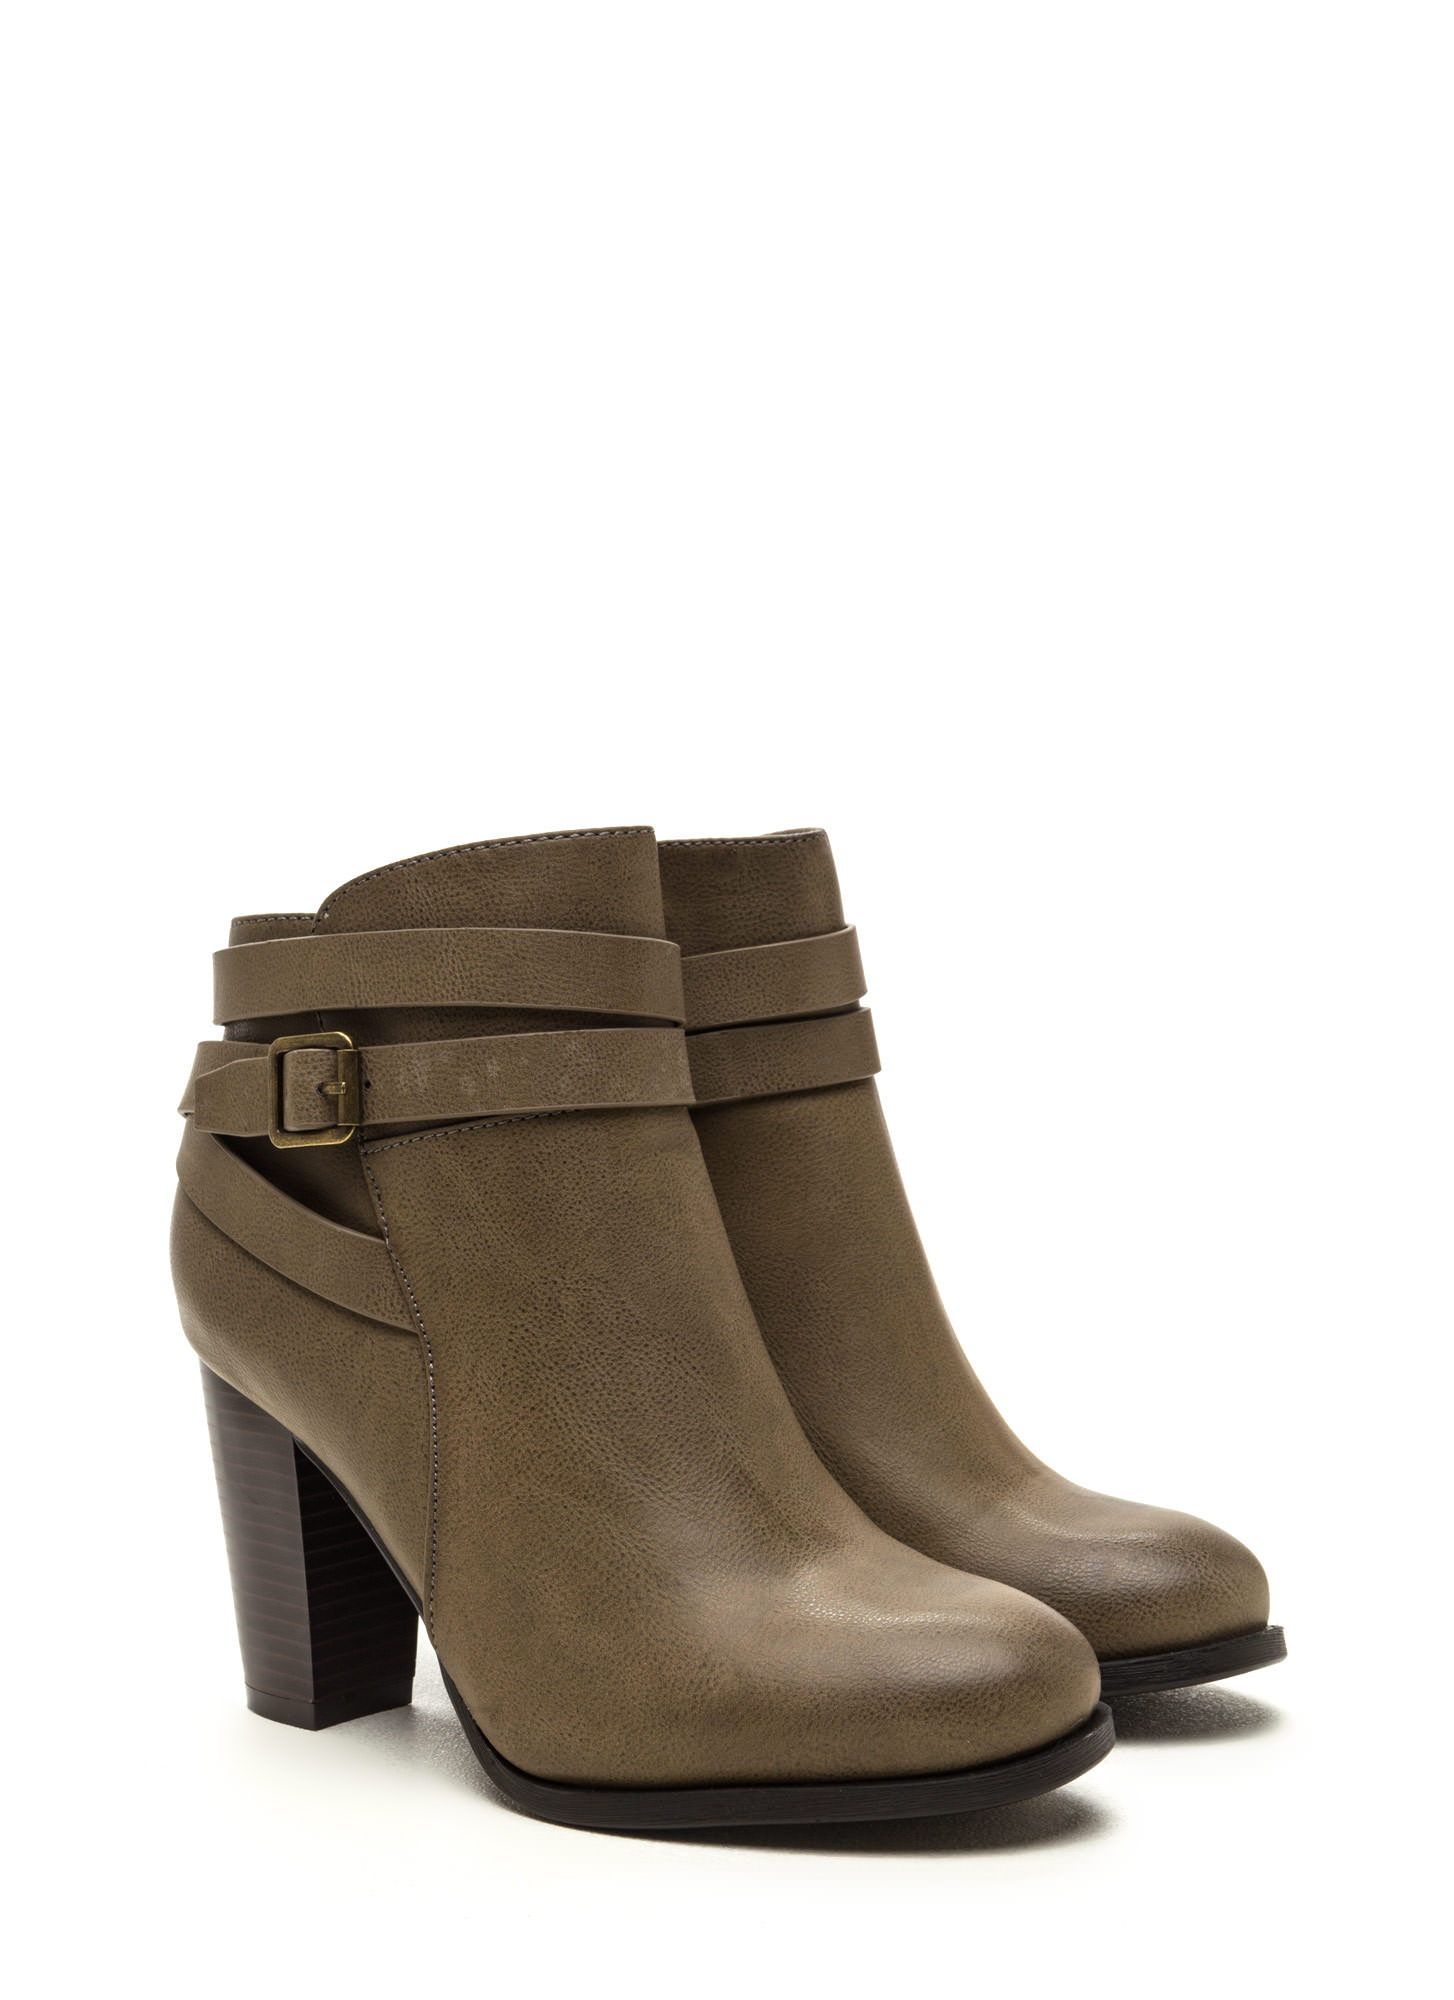 Style Crossroad Faux Leather Booties TAUPE